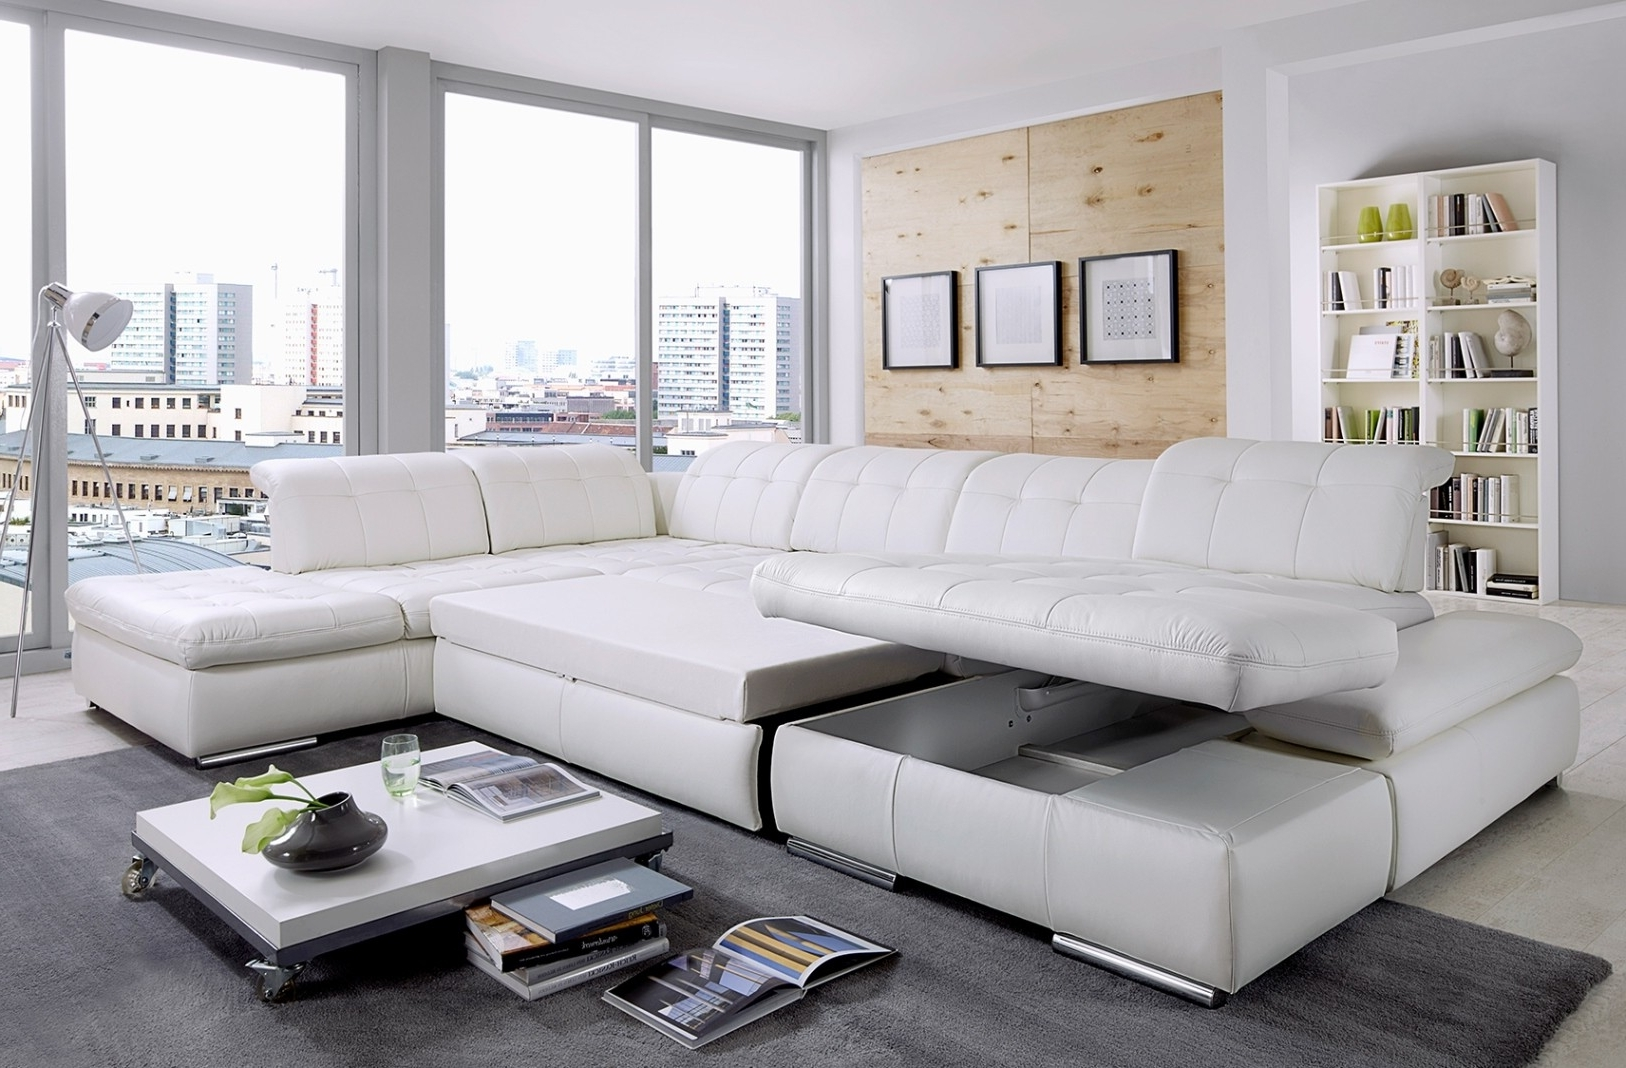 Best Modern Contemporary Furniture Stores Orlando Miami Florida Fl Intended For Trendy Nh Sectional Sofas (View 8 of 15)